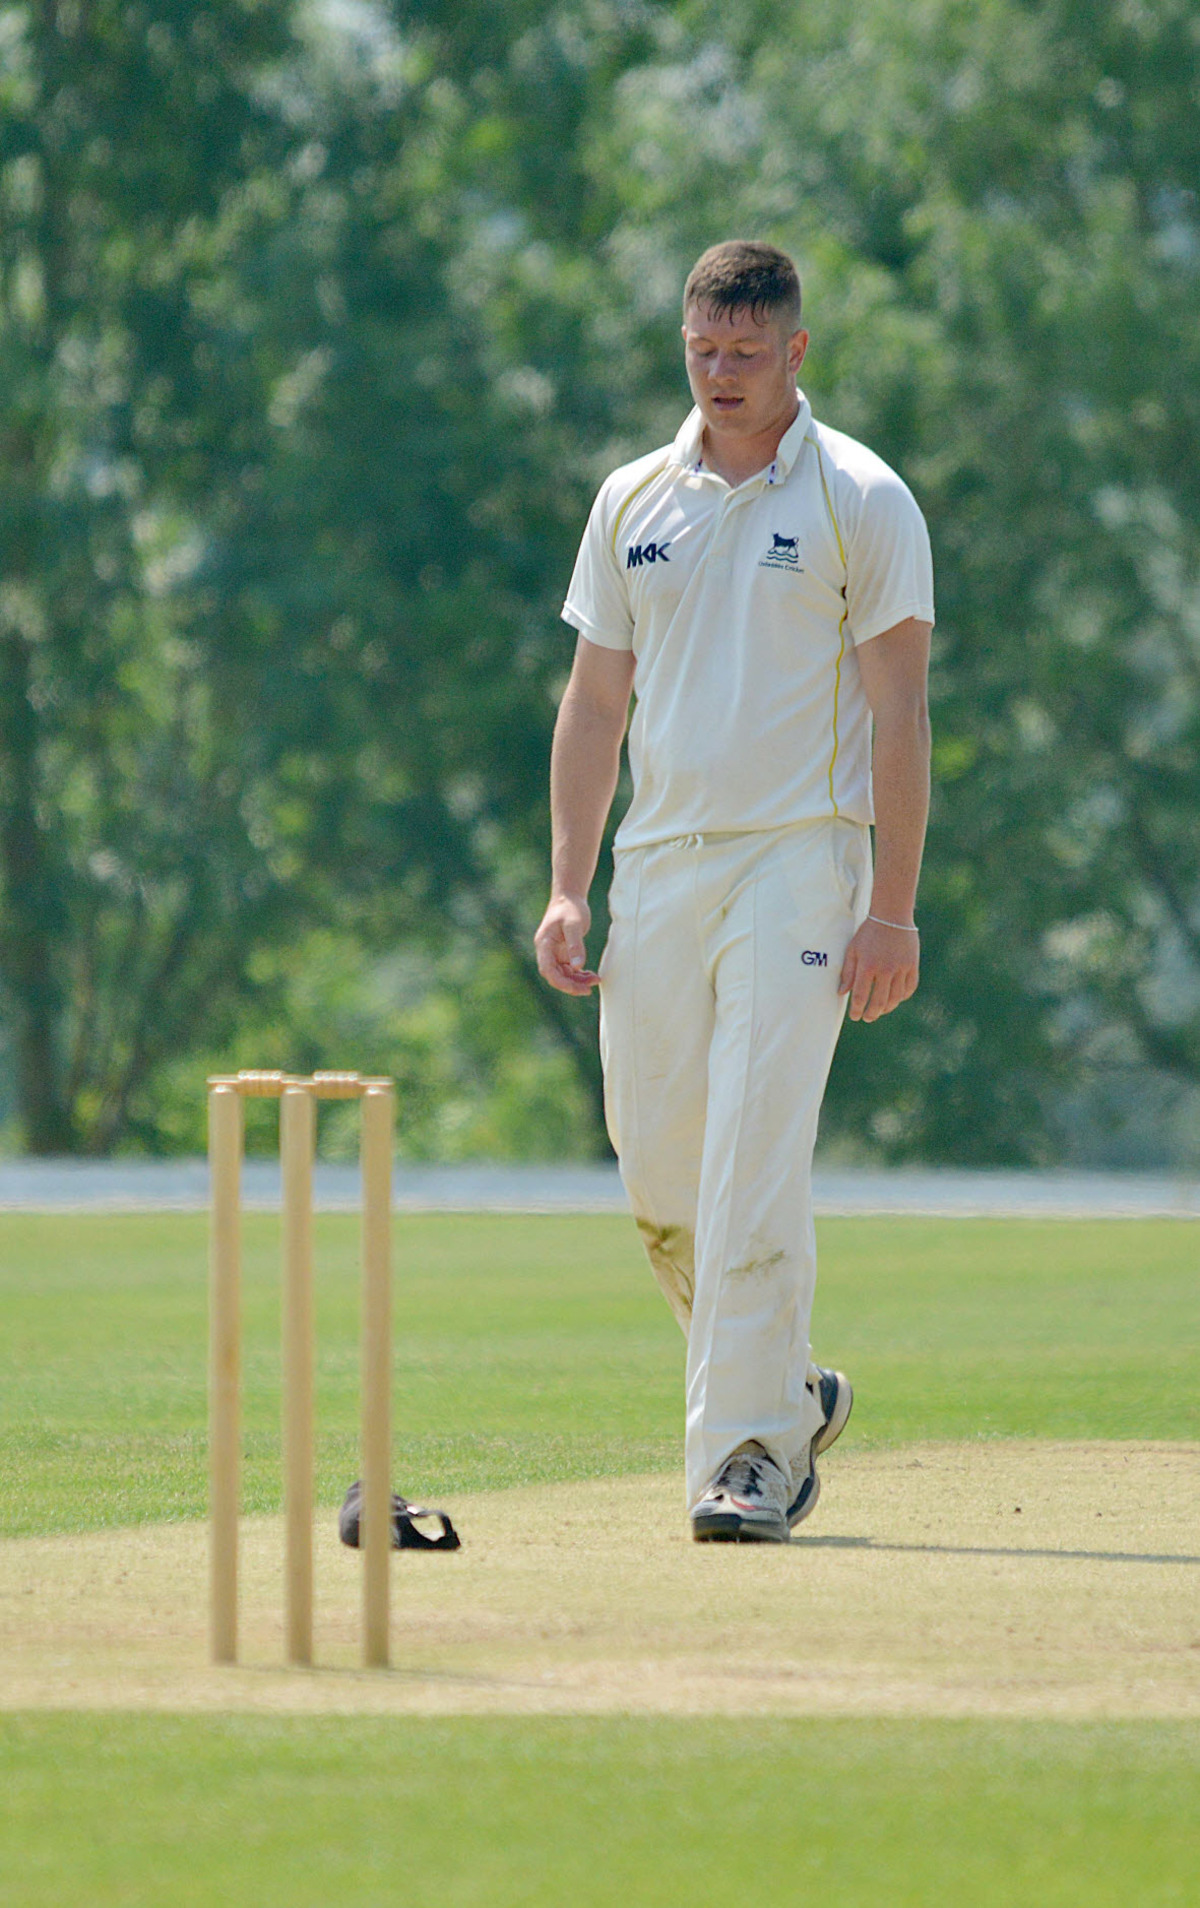 Oxon fast bowler Karl Penhale is not a happy man at the end of an over against Devon